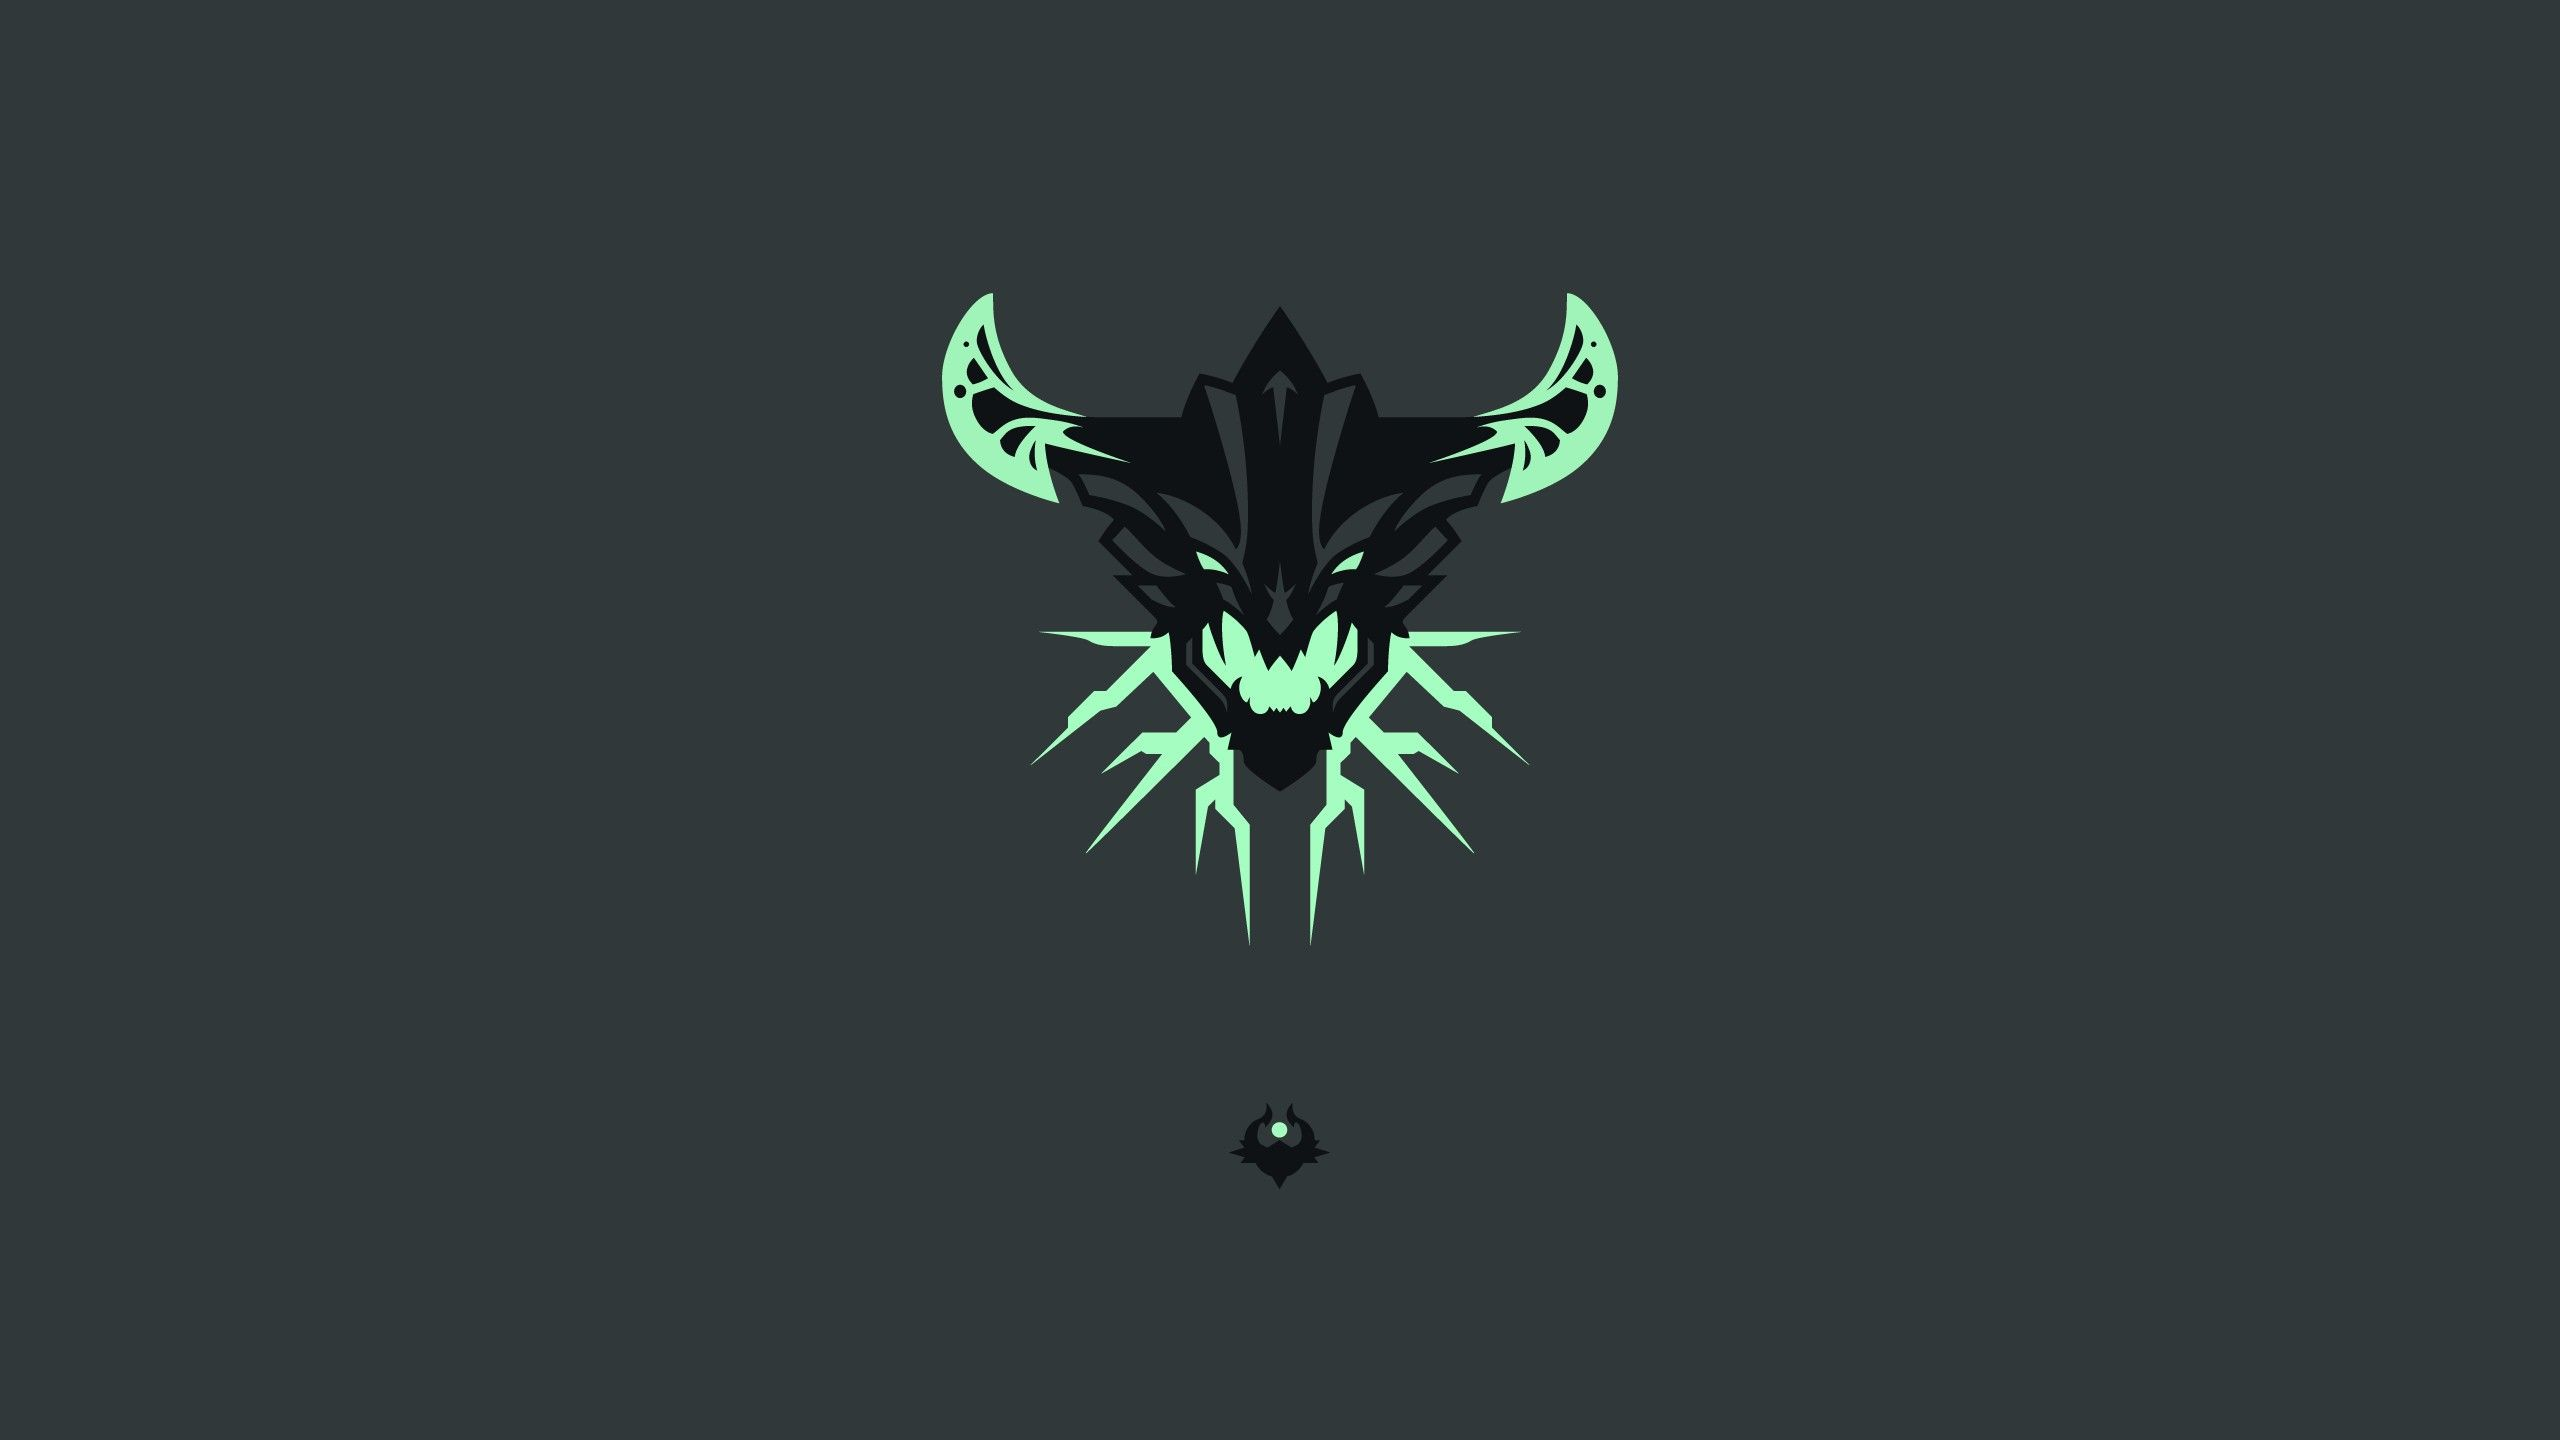 2 background images html - Simplistic Simple Background Dota 2 Outworld Devourer 2560x1440 Simple Dota Outworld